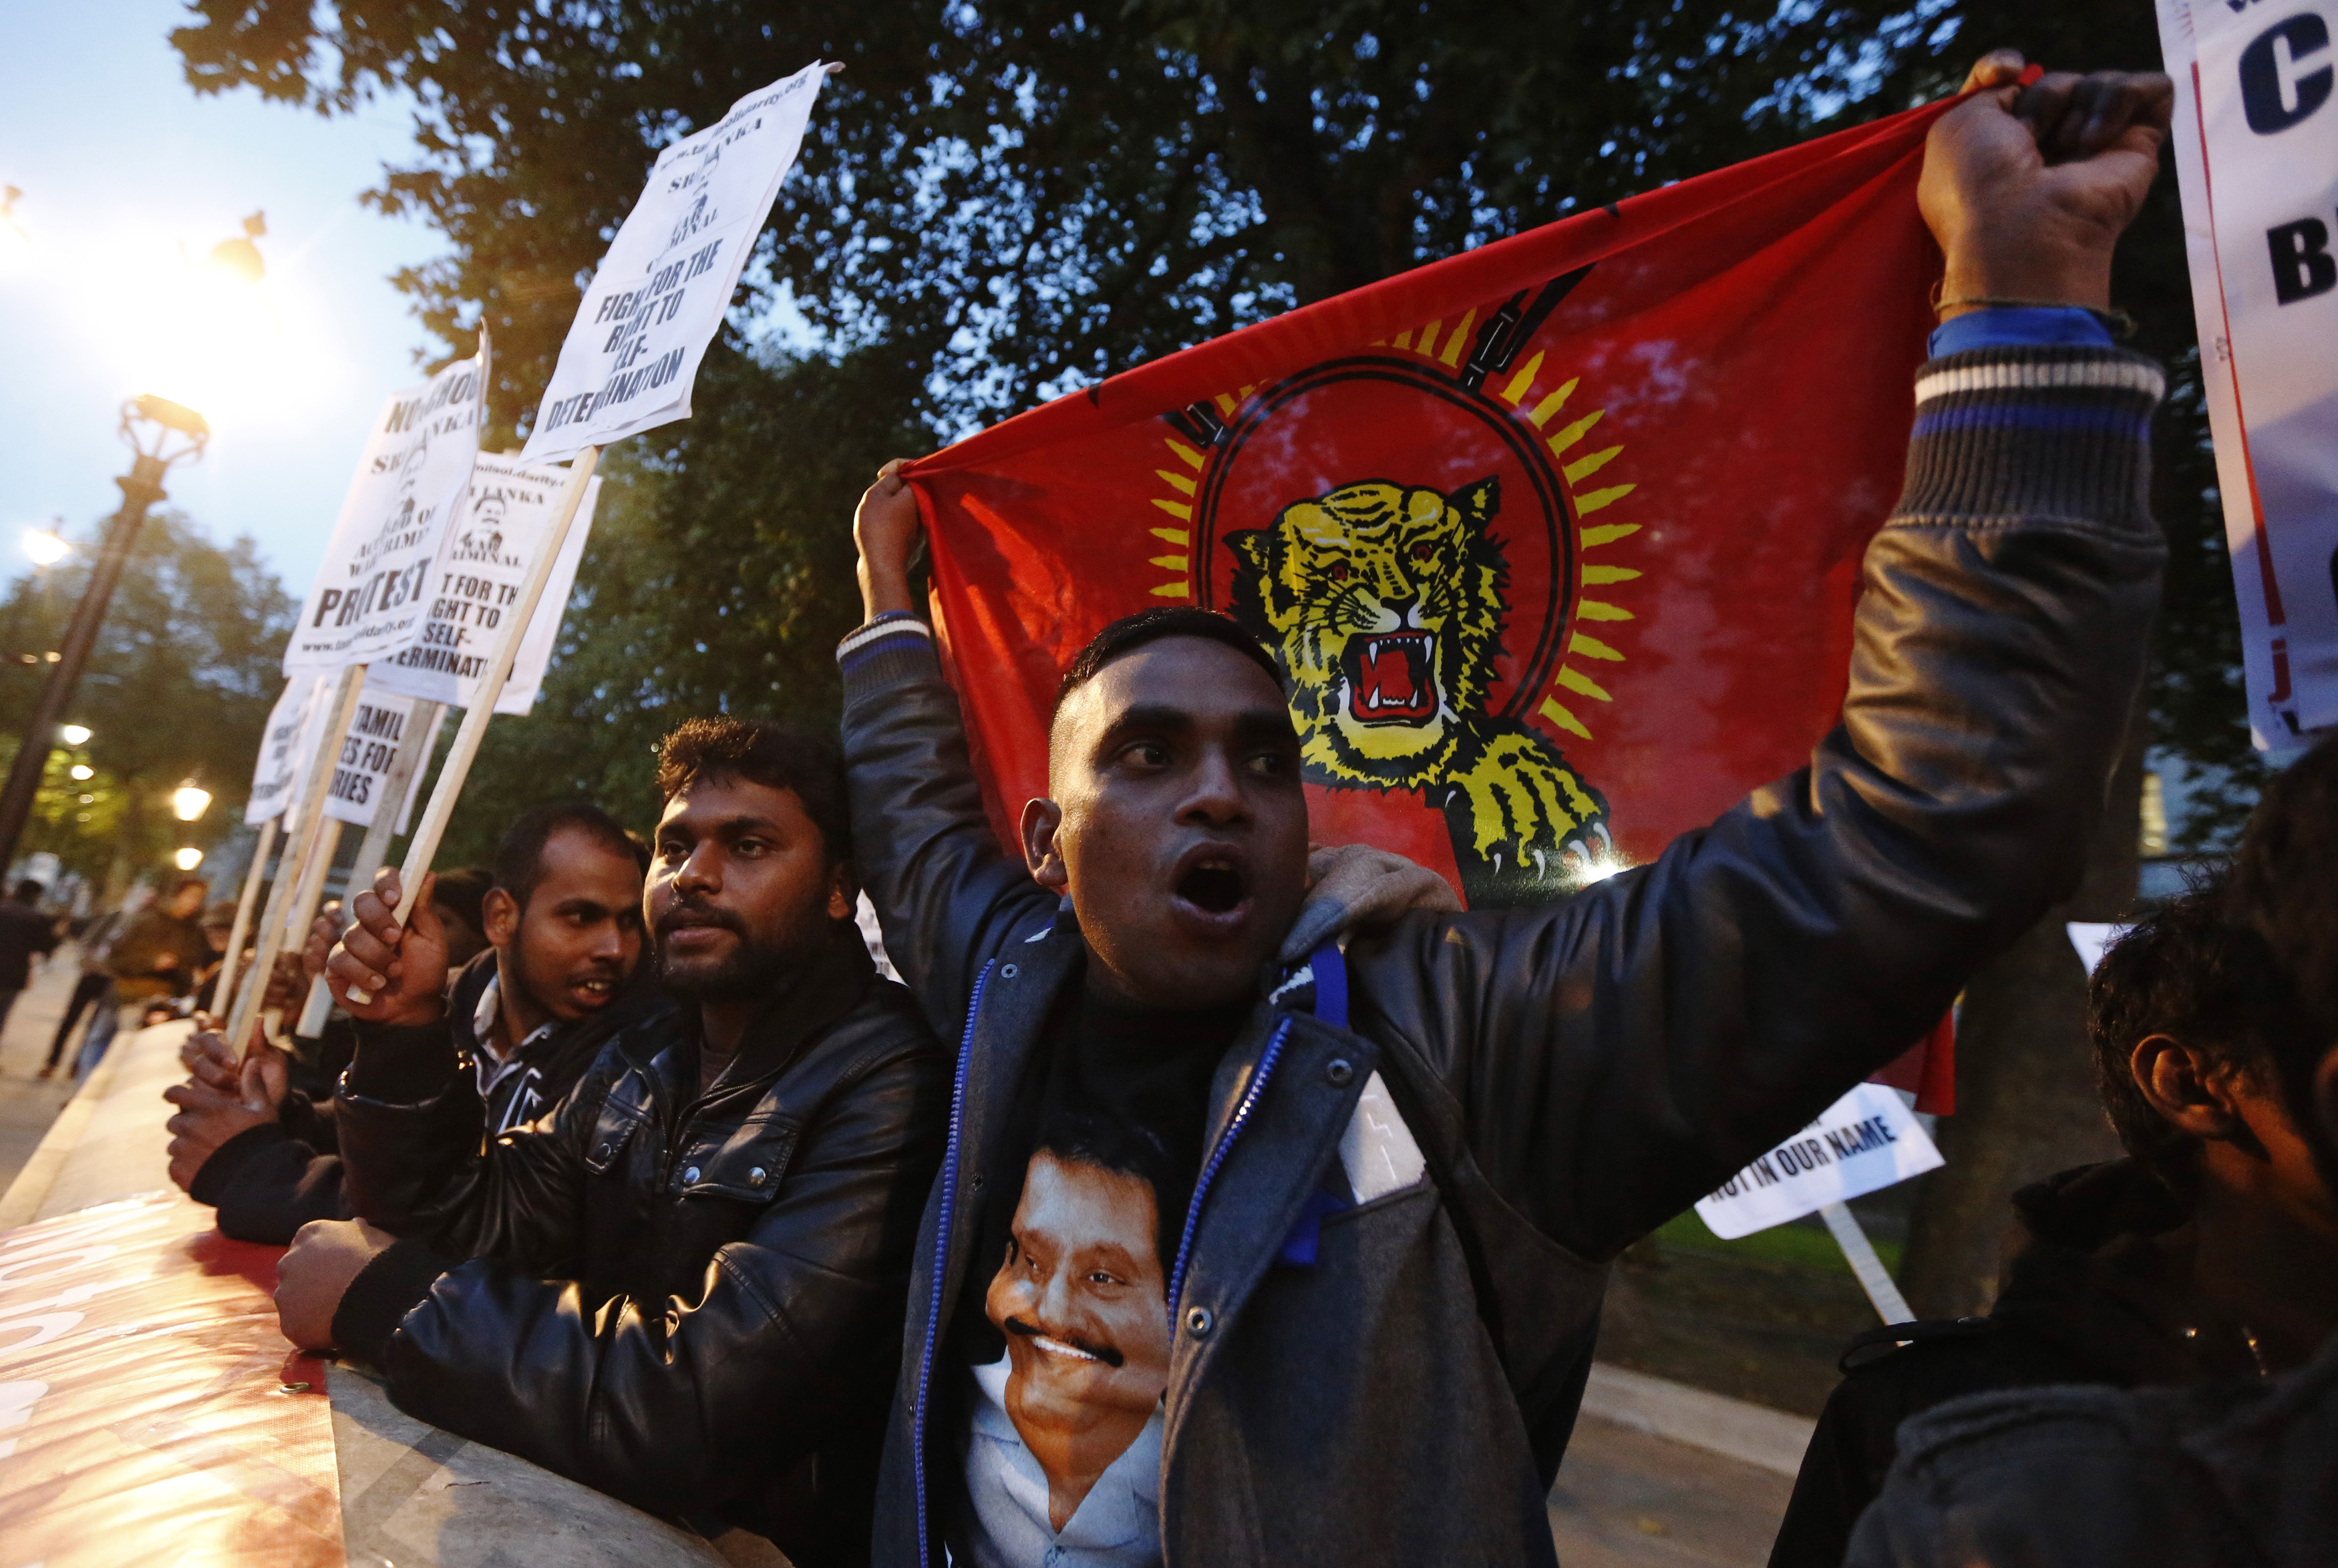 Tamil demonstratorsprotest Sri Lanka's human rights record outside Downing Street in  London in November  2013.